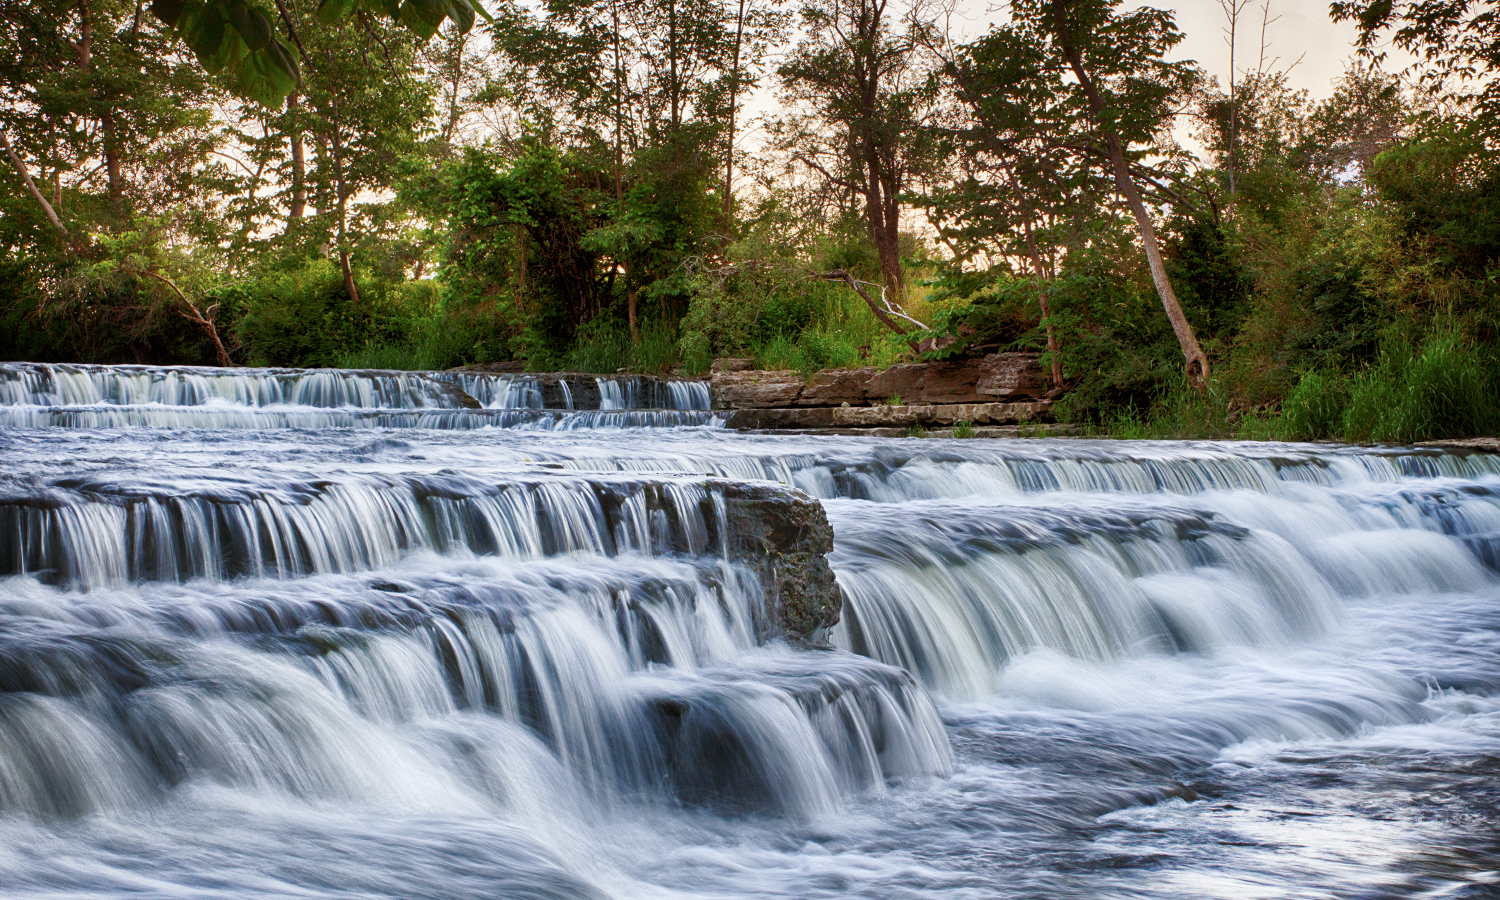 Water rushes over Double Down Falls at Flint Creek in Ontario, N.Y.